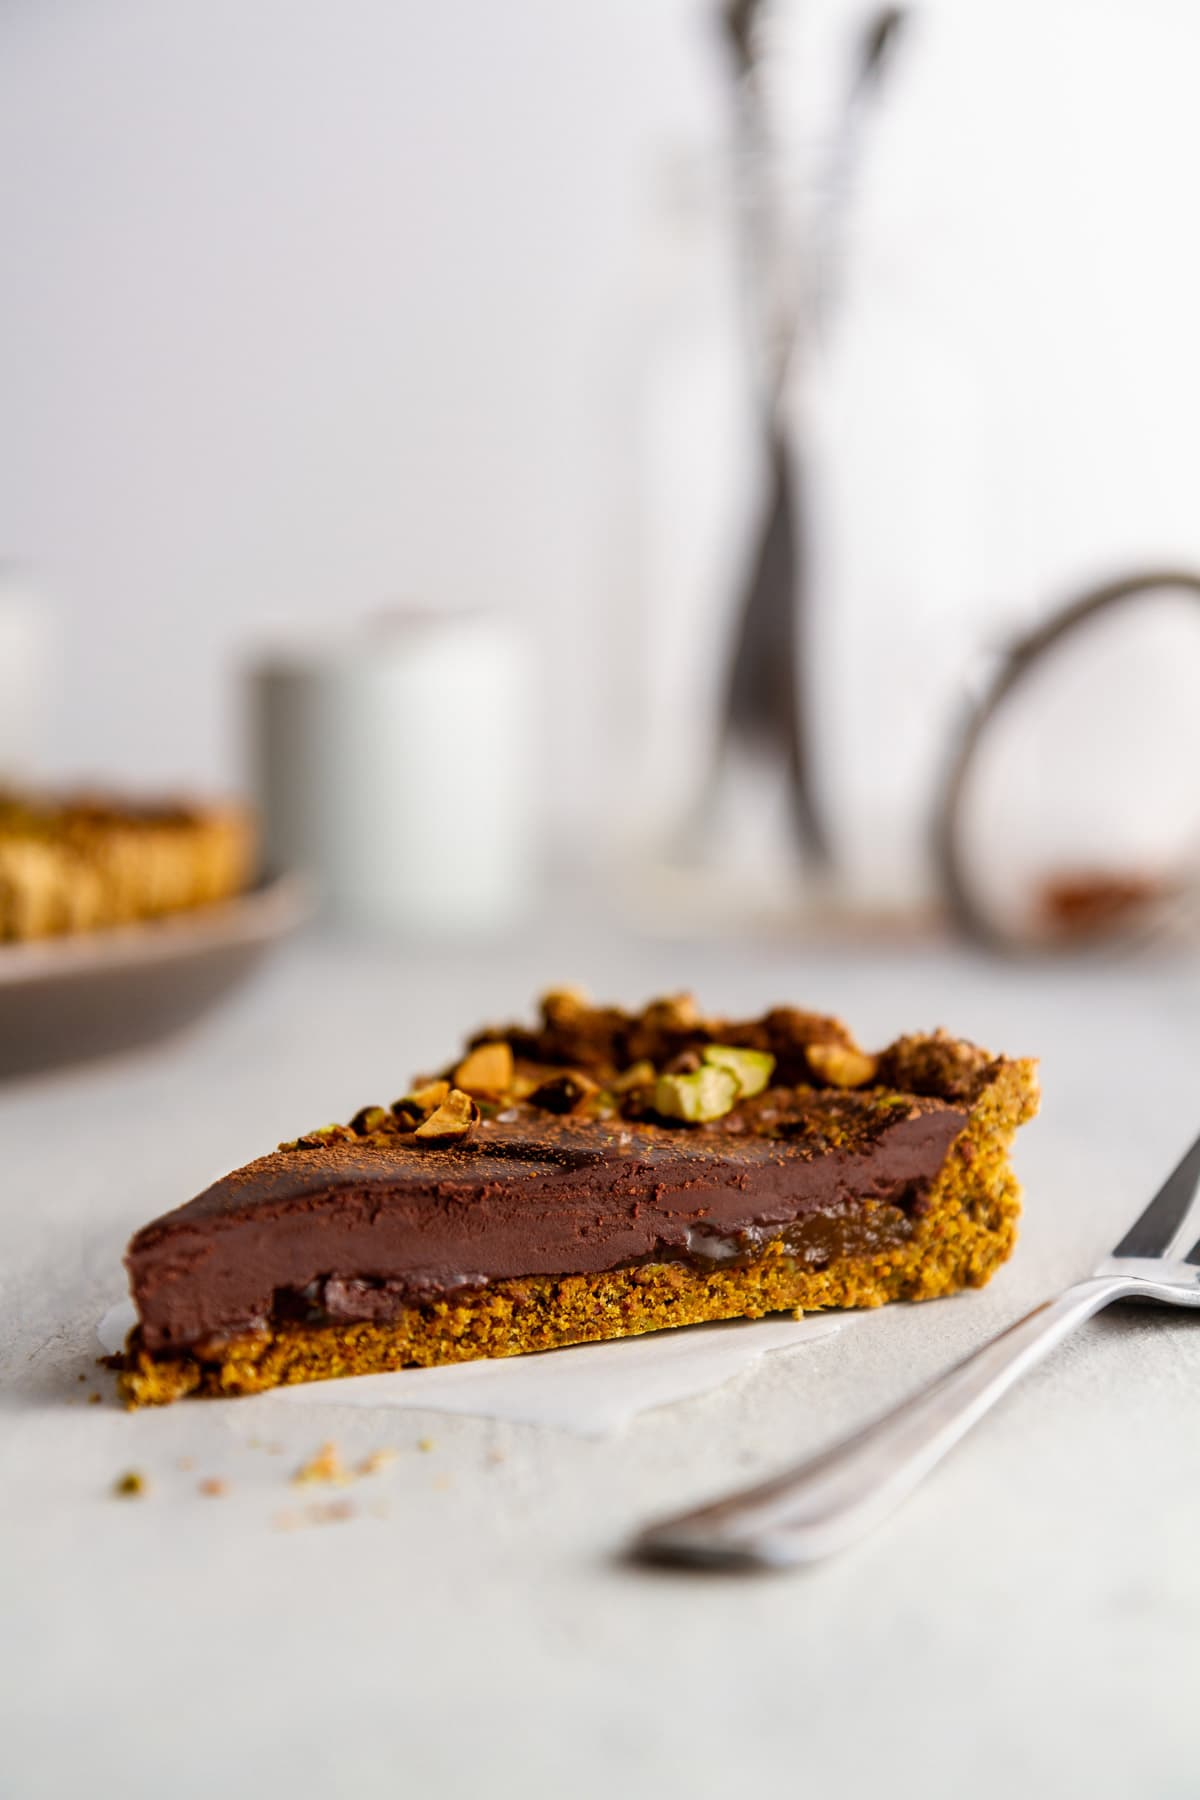 a slice of a chocolate tart on a surface